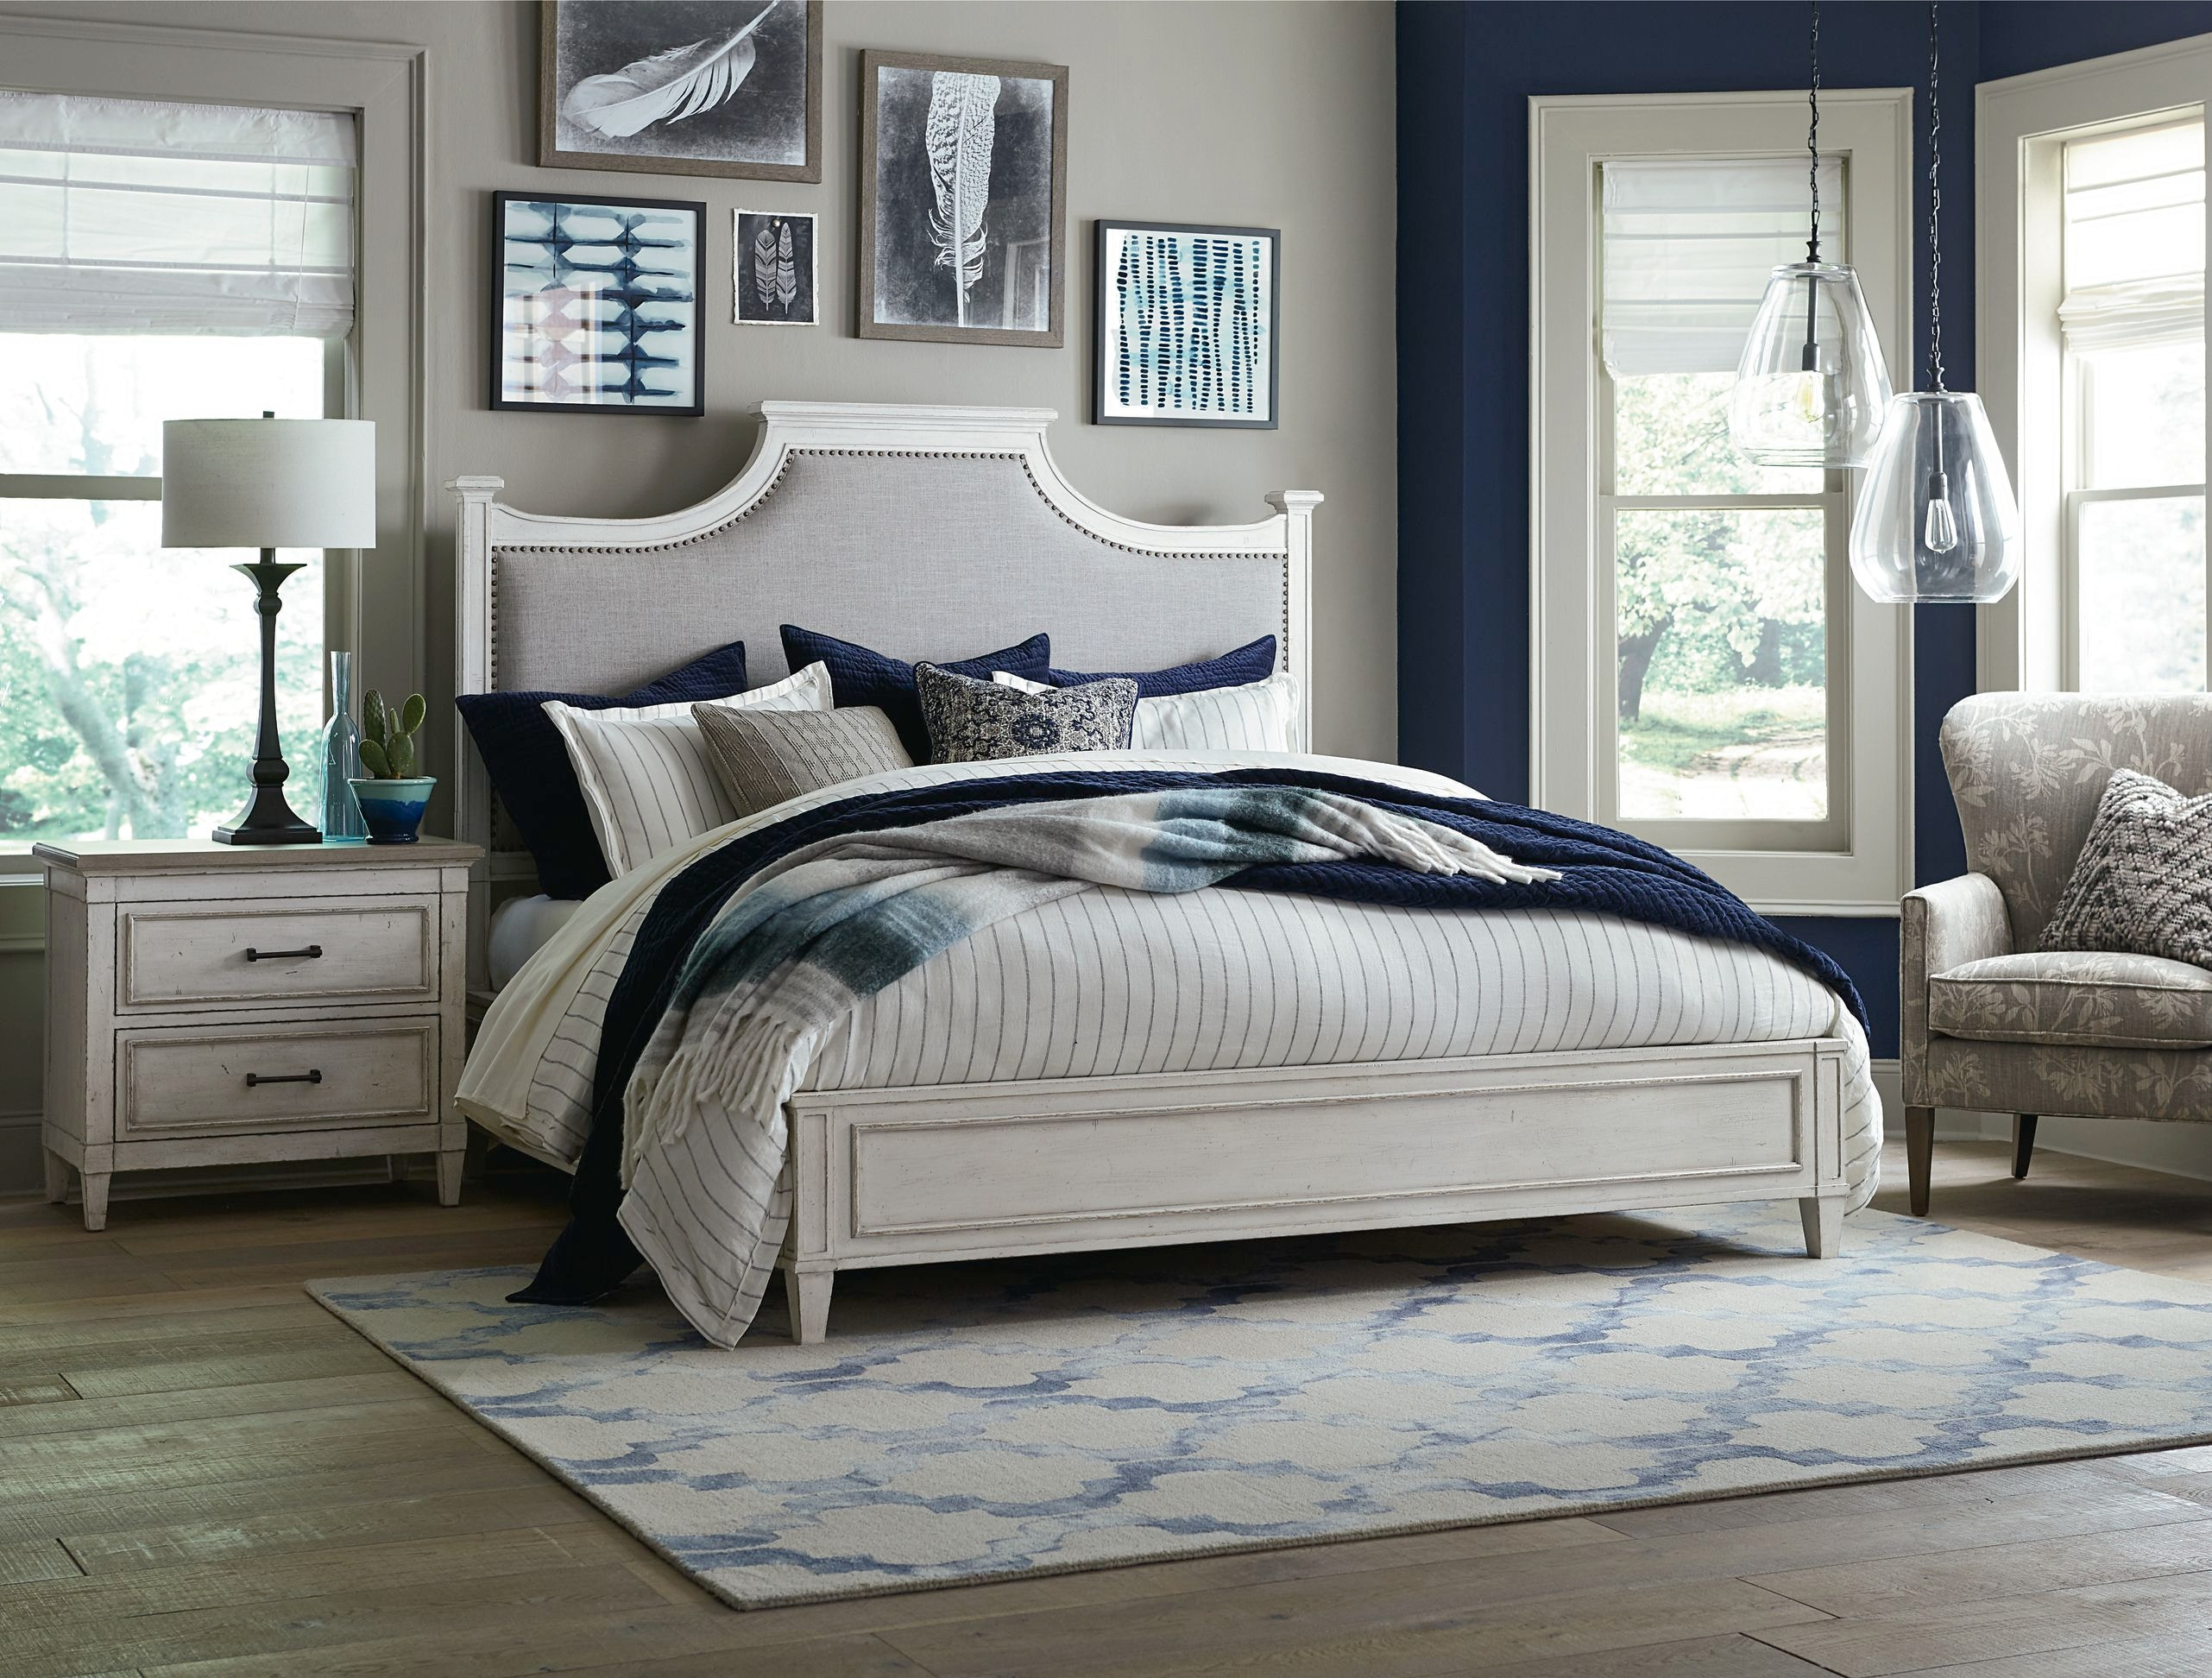 Bassett Bella King Upholstered Bed 742776 83 87